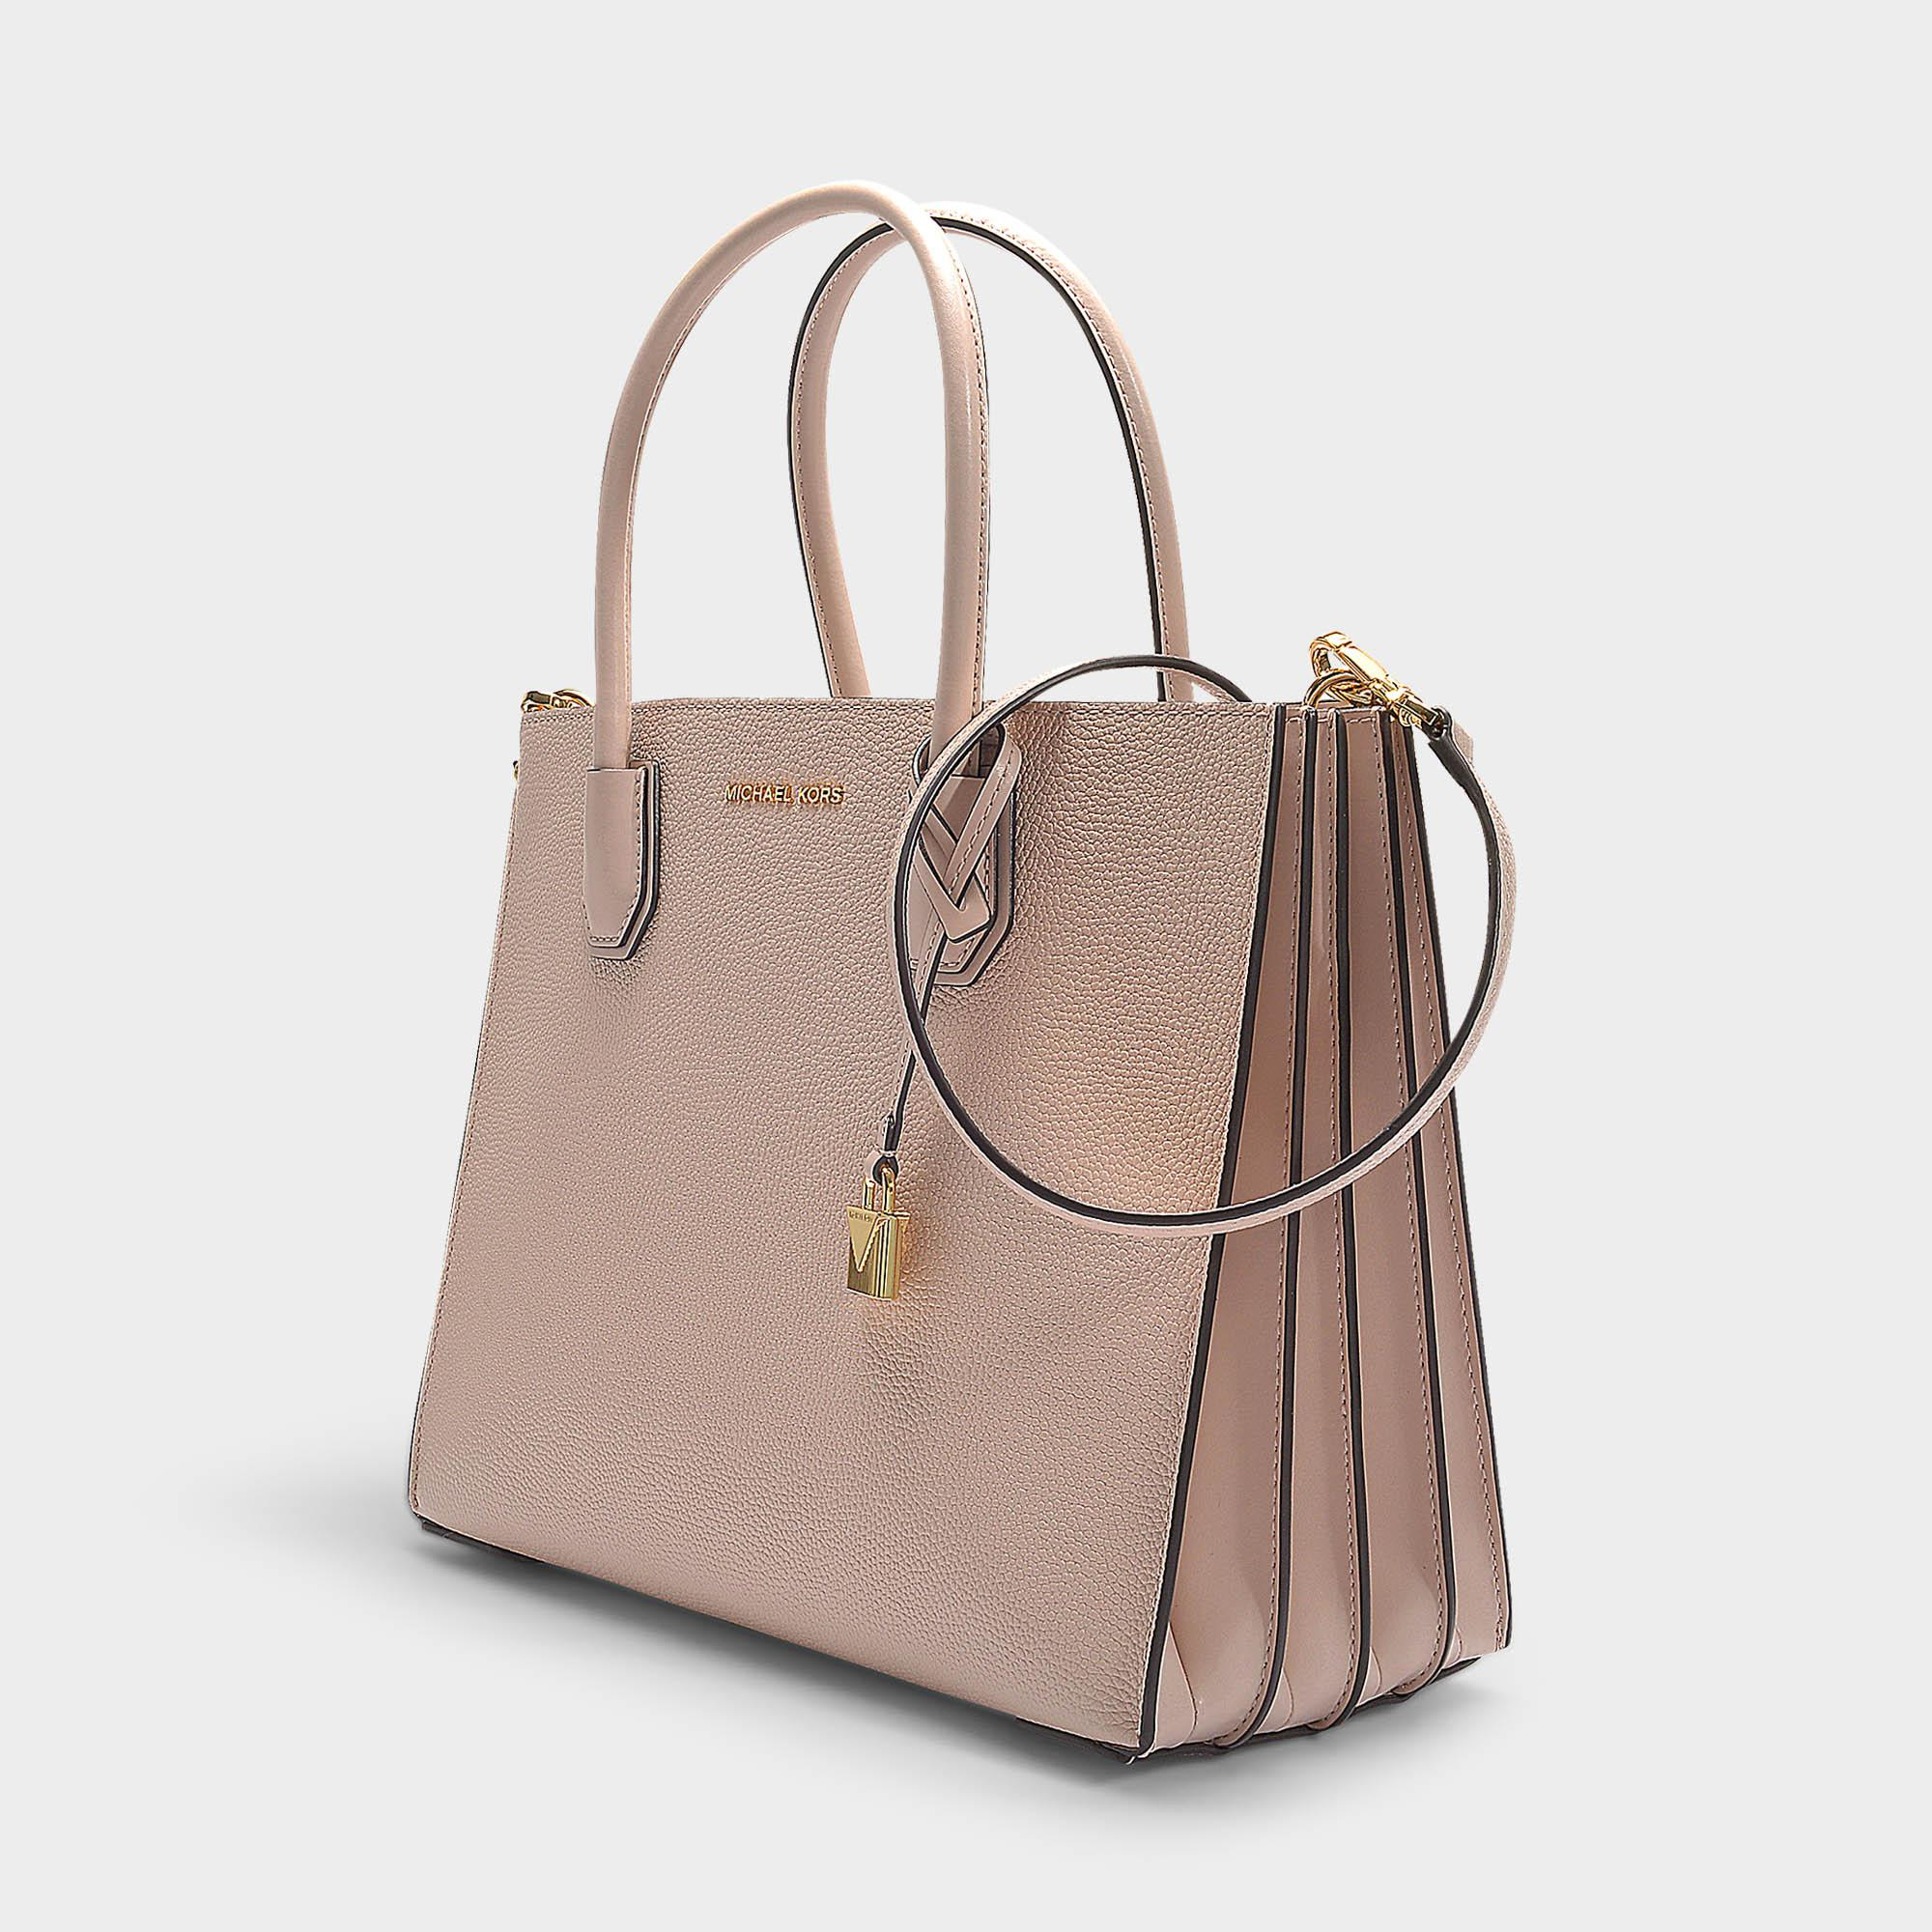 fabeb1a6ae537e MICHAEL Michael Kors - Mercer Large Accordion Convertible Tote Bag In Soft  Pink Grained Calfskin -. View fullscreen